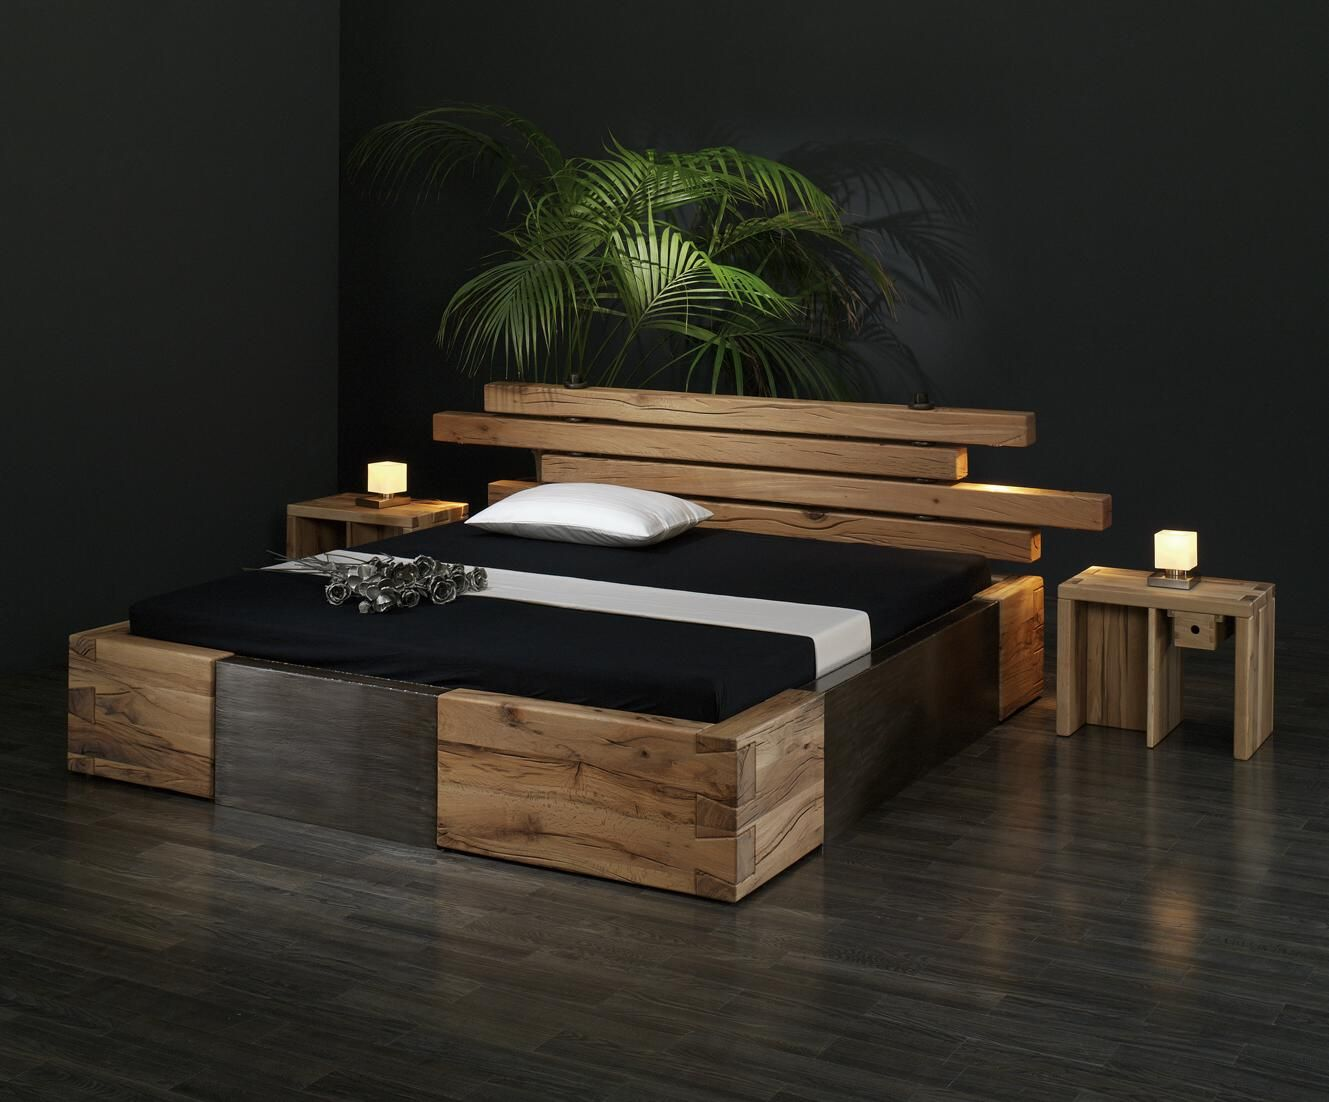 Balkenbett sumpfeiche  holz bett design - Google Search | Bedroom | Pinterest | Google ...